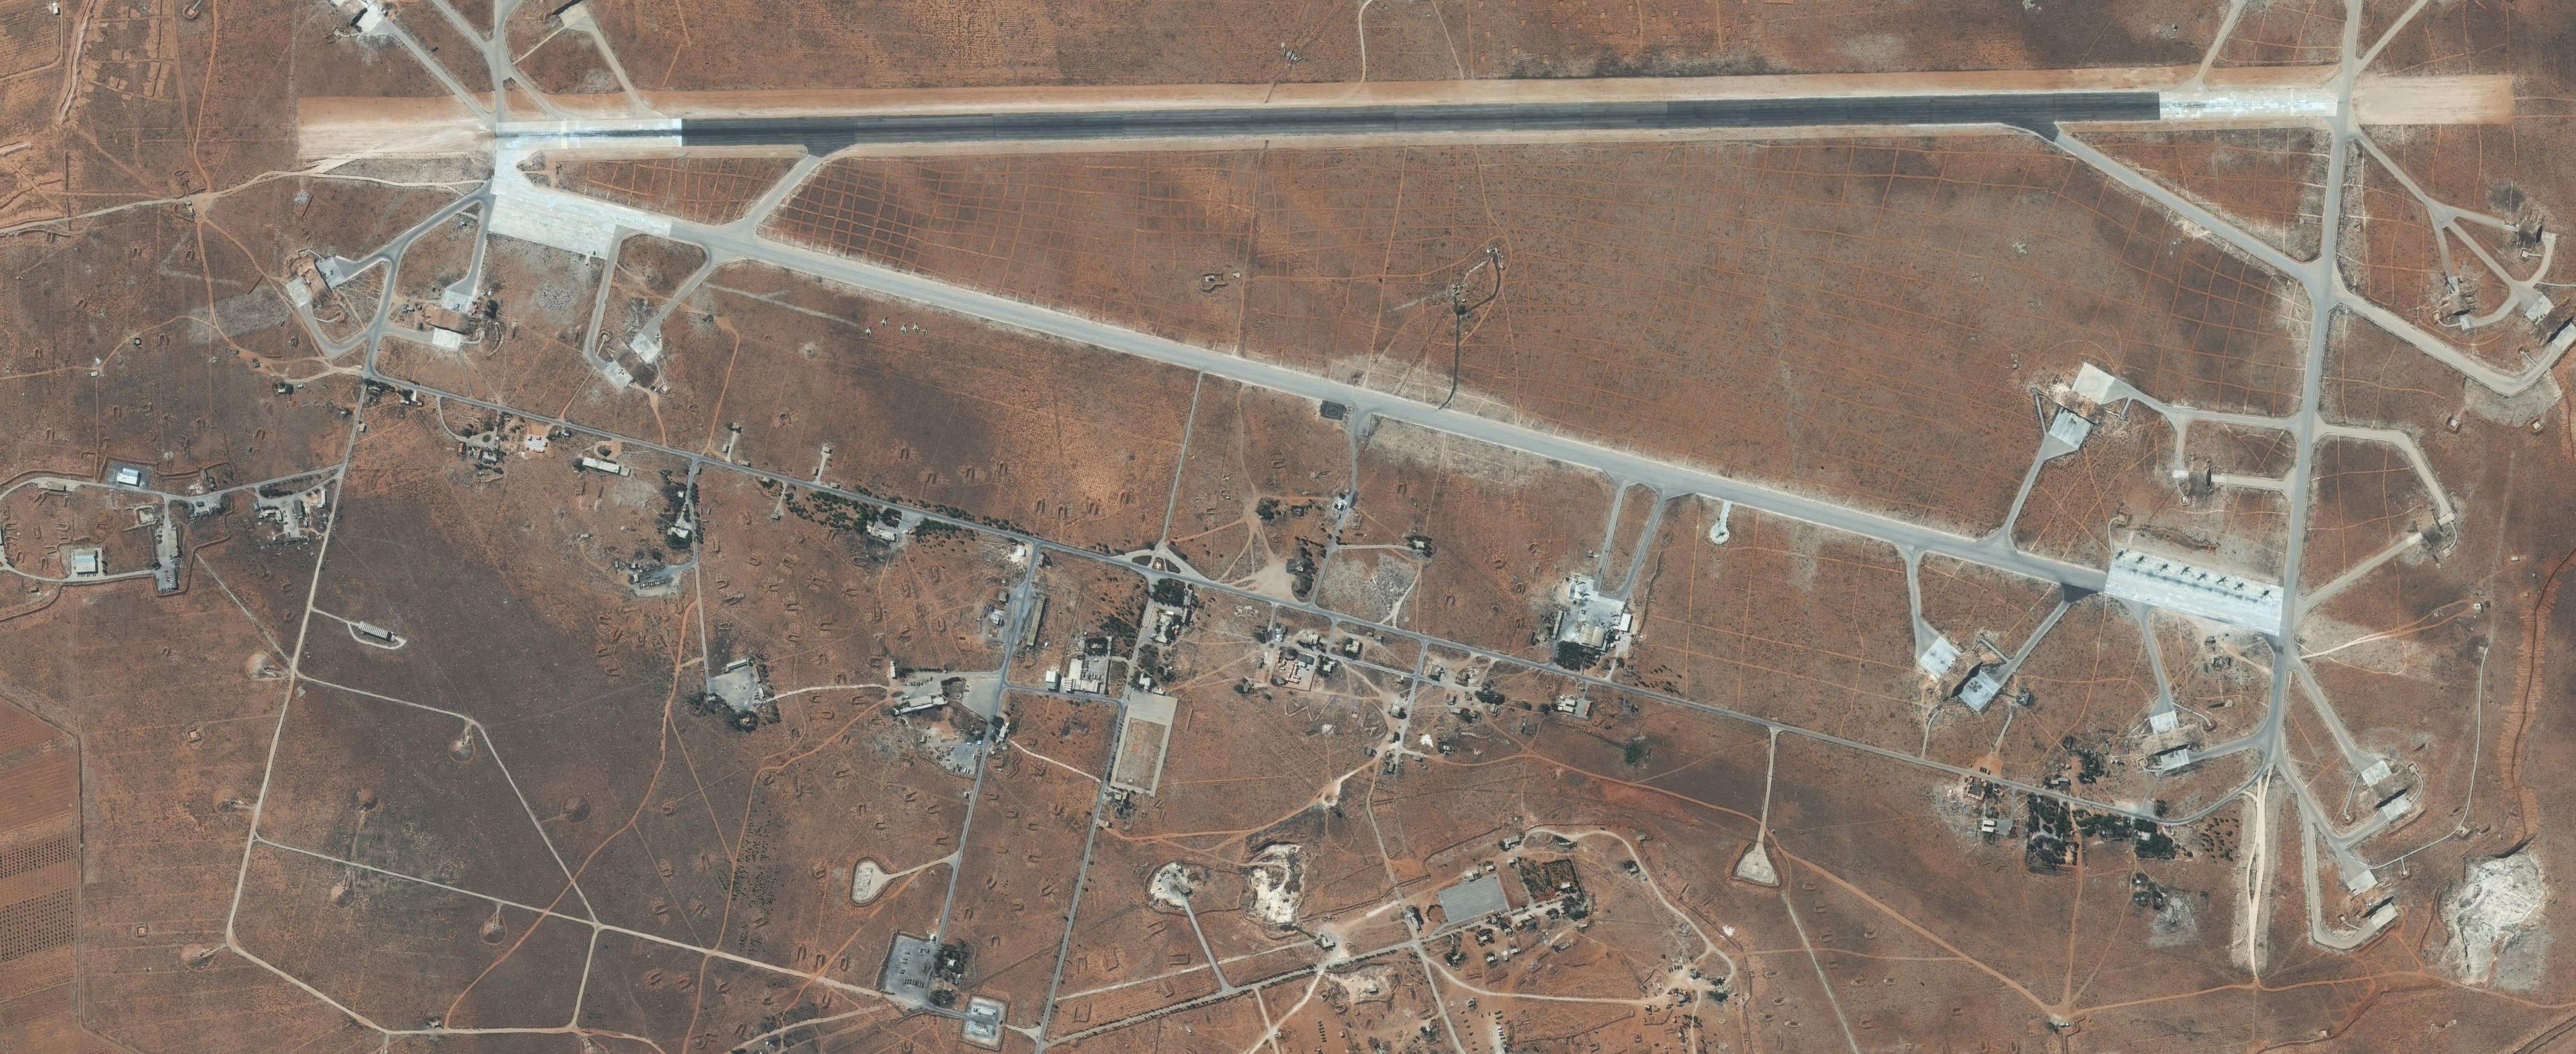 Shayrat airbase, September 2016 (Photo: Getty Images/DigitalGlobe)